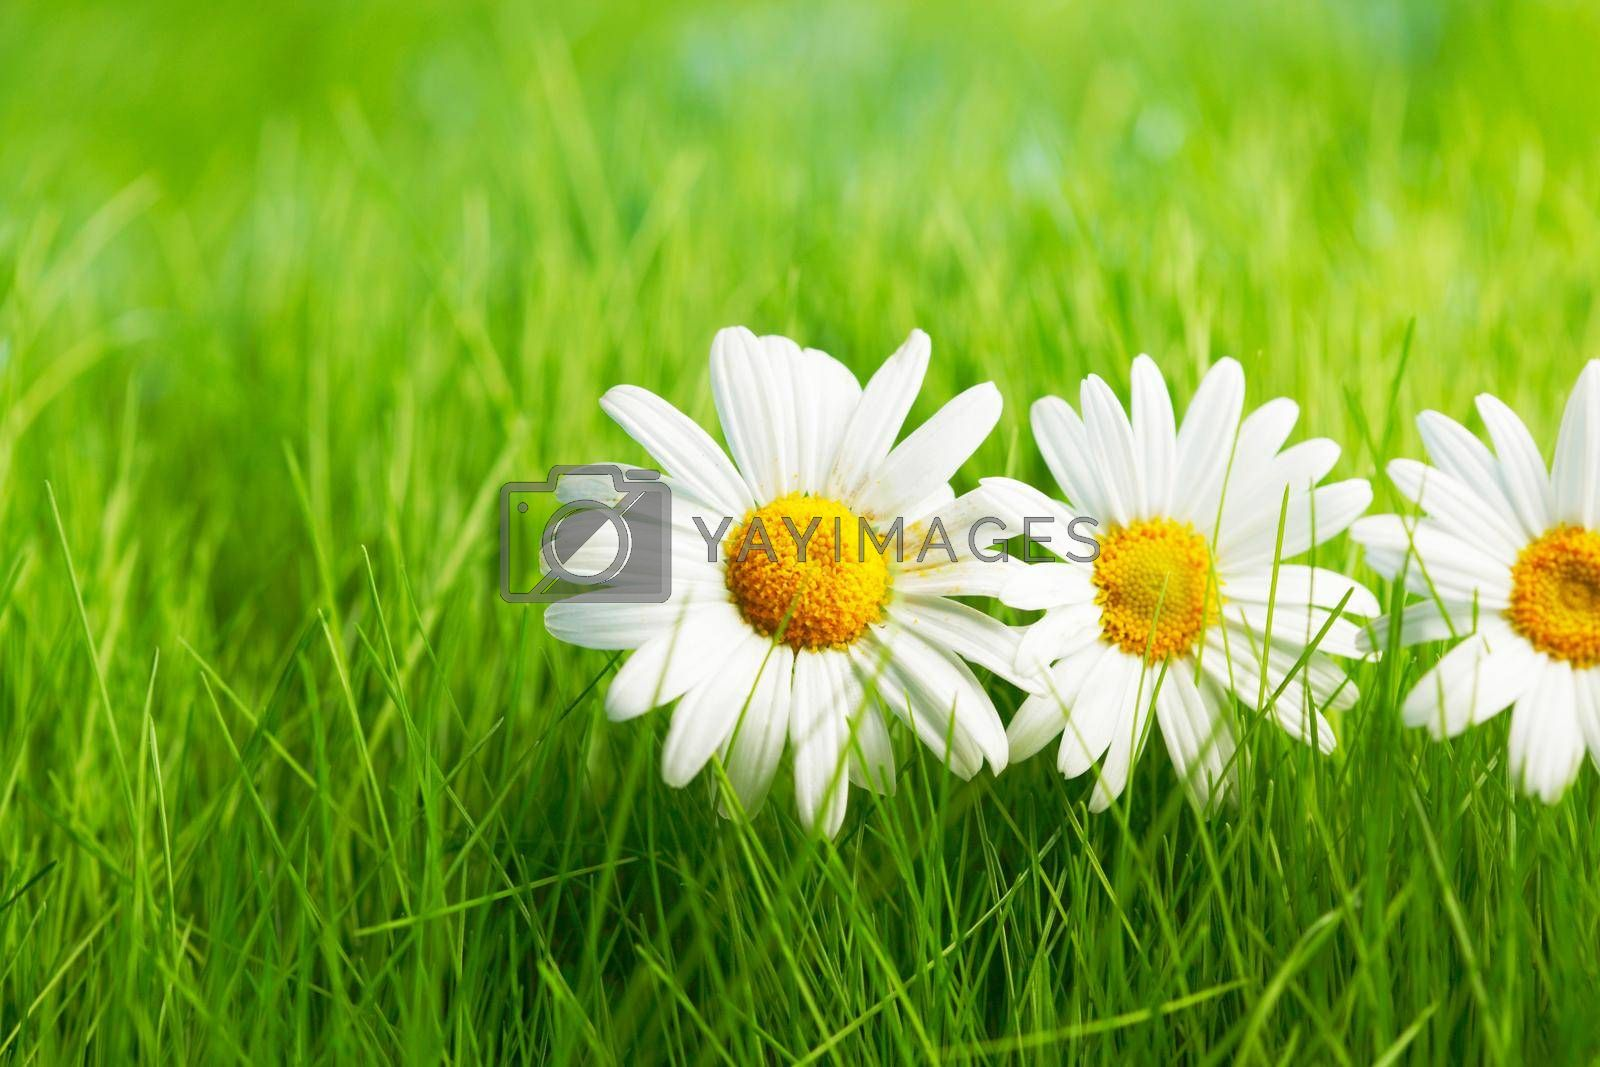 Royalty free image of Chamomile flowers on grass by Yellowj